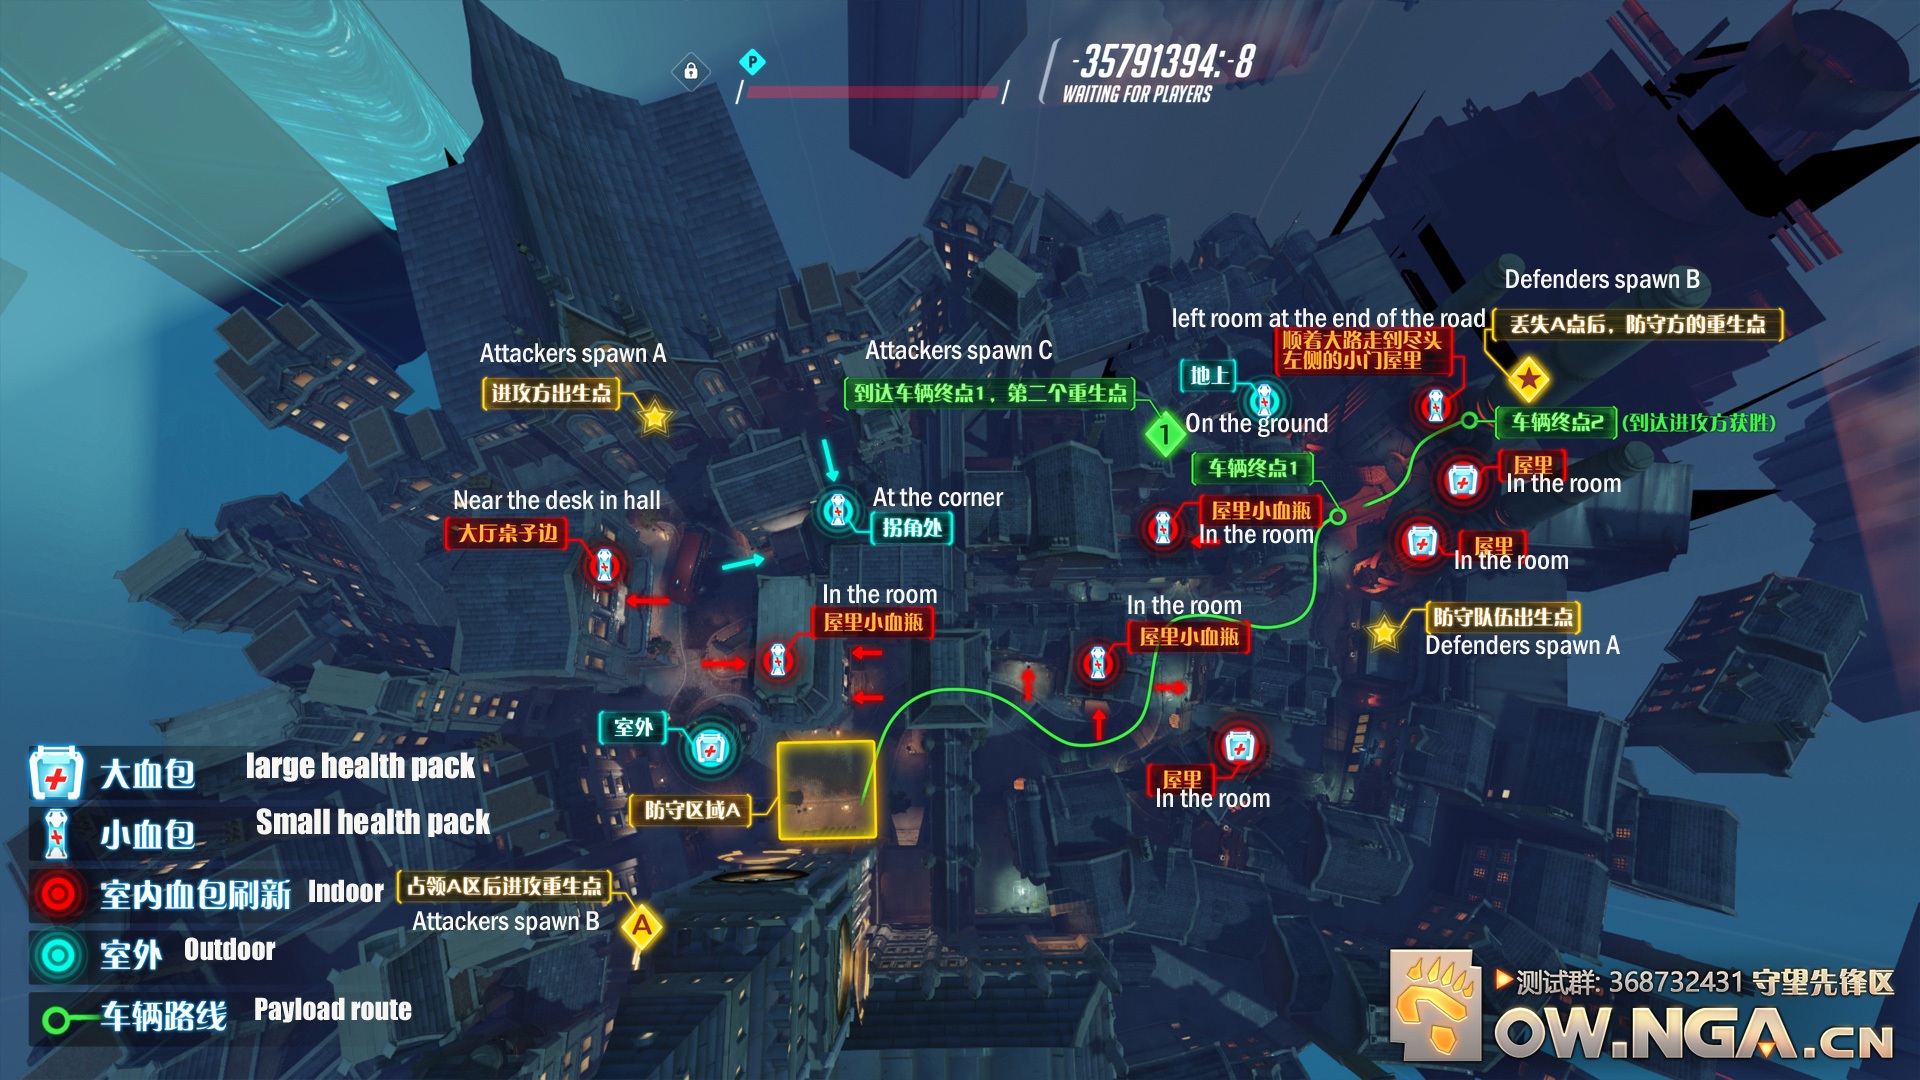 Kings row overwatch wiki fandom powered by wikia kings row overhead map gumiabroncs Image collections